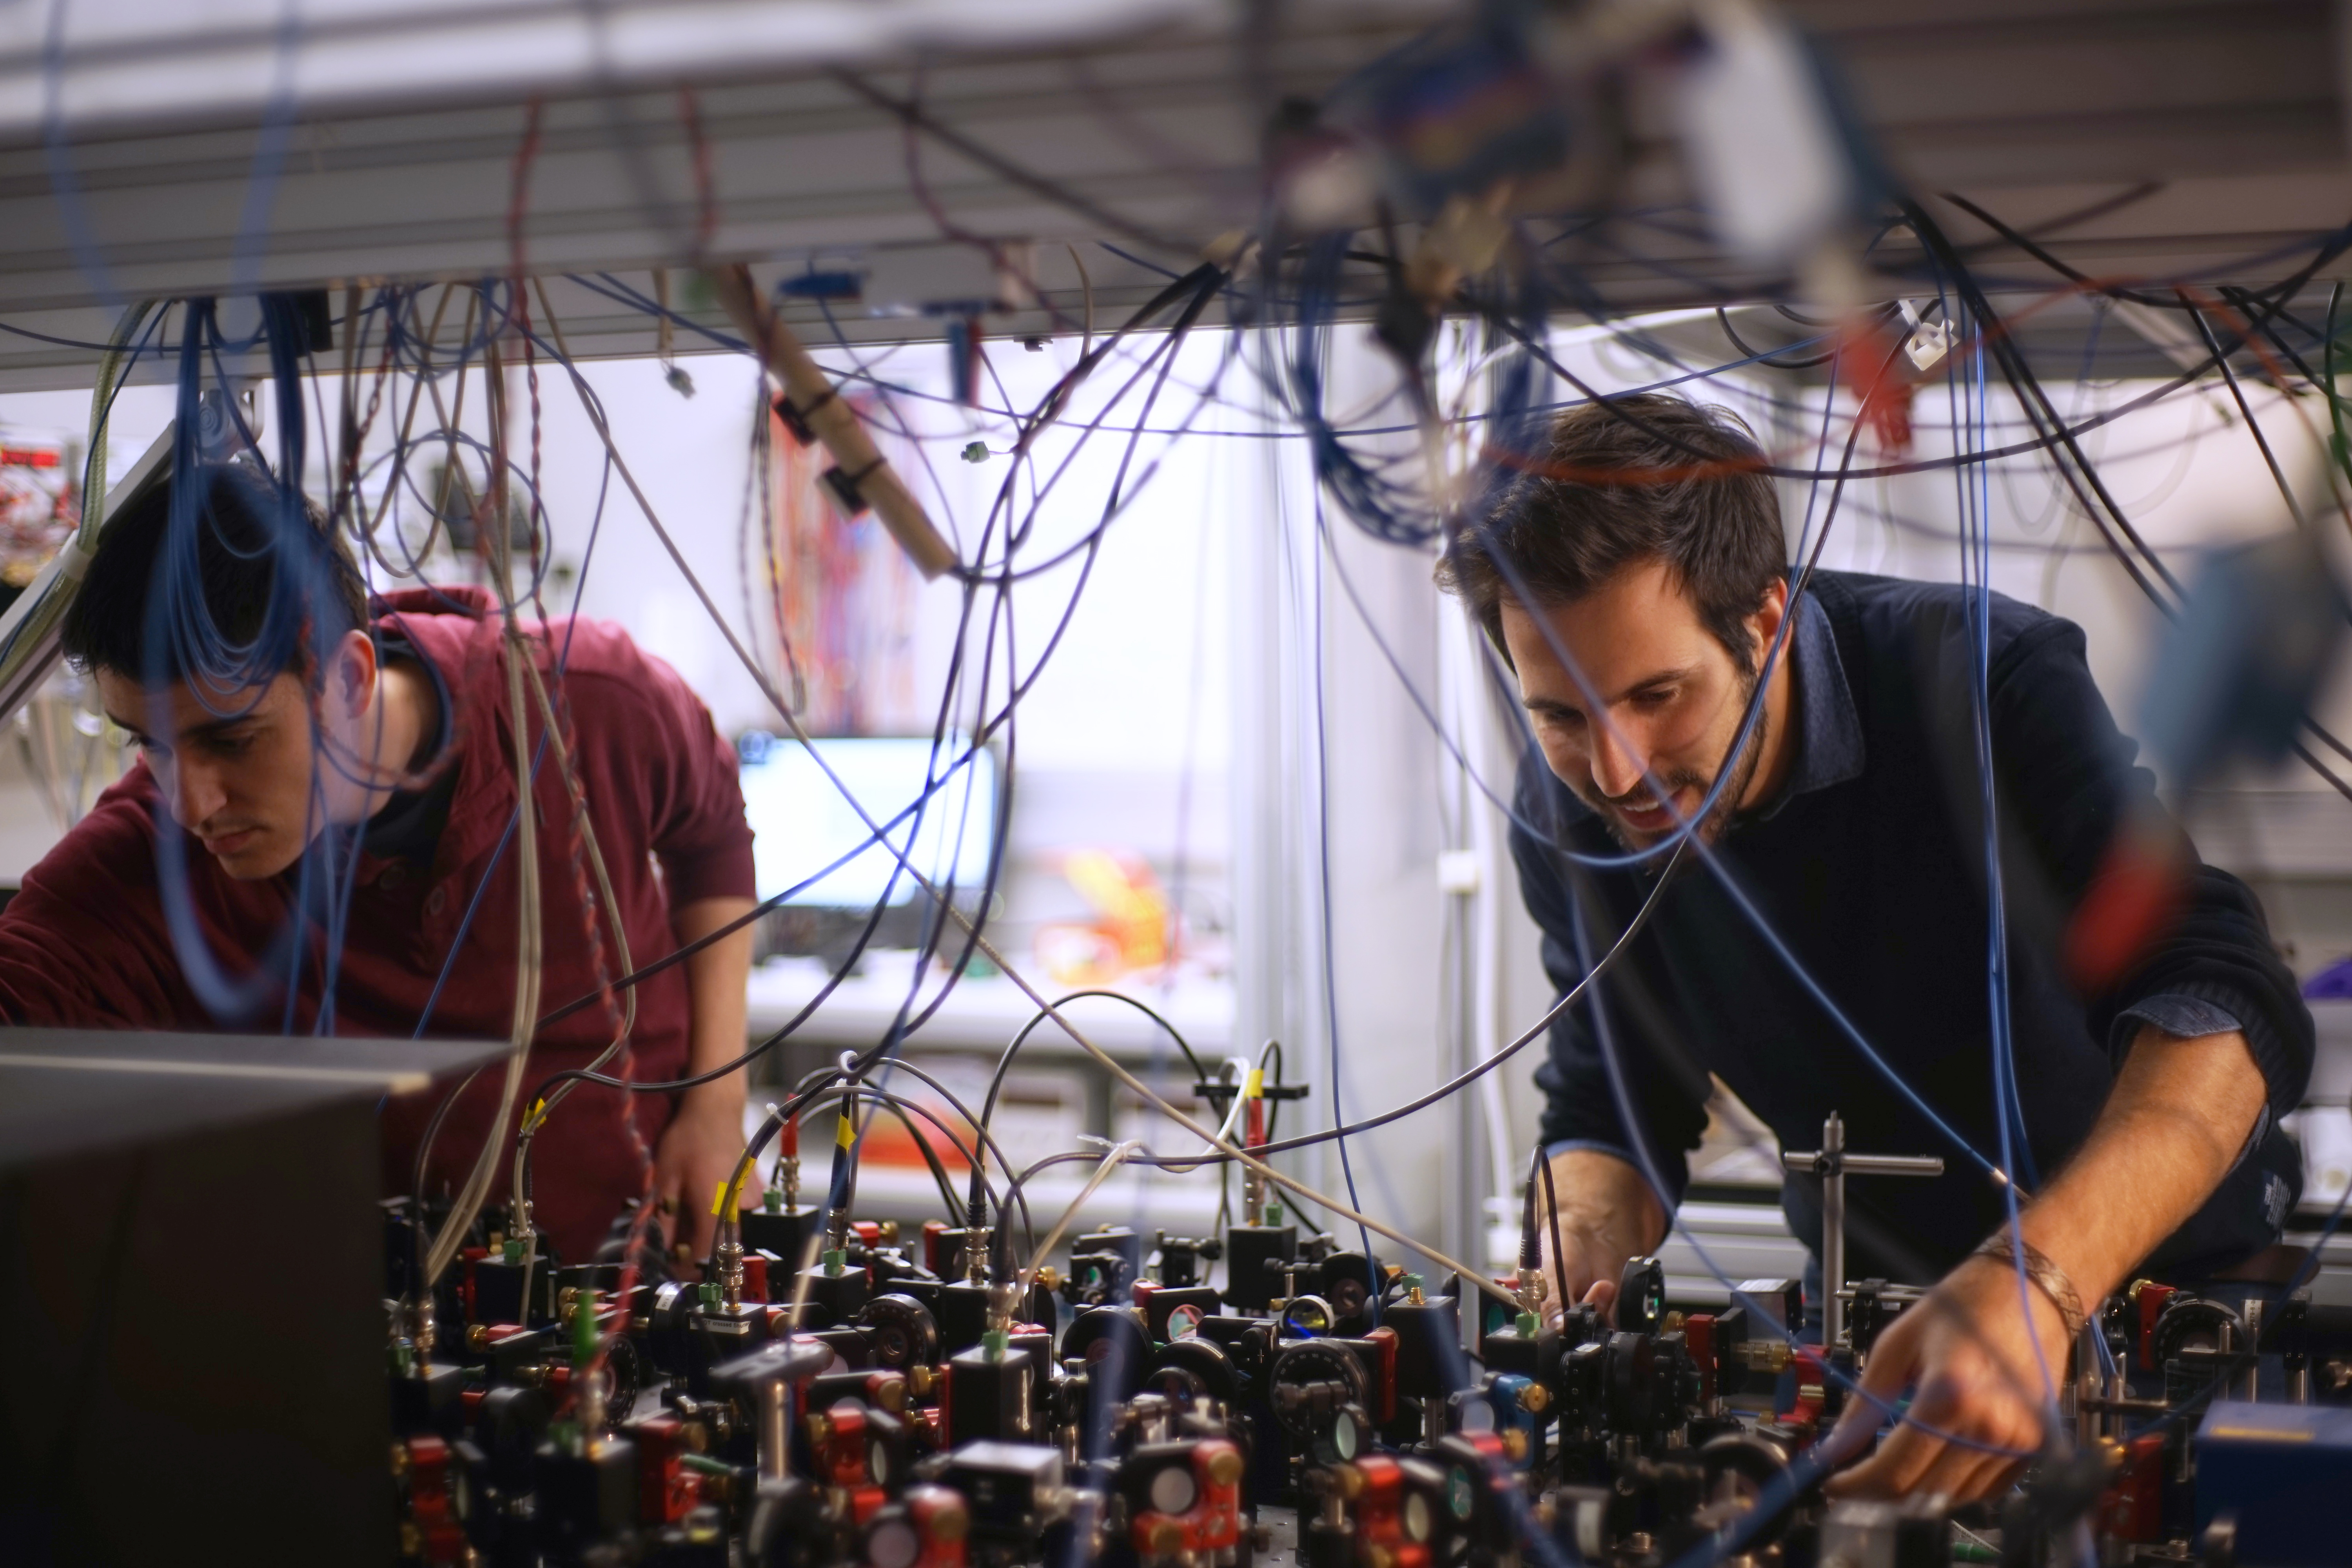 Researchers work on an experimental setup to circumvent Heisenberg's principle and reduce quantum uncertainty in spin measurements.